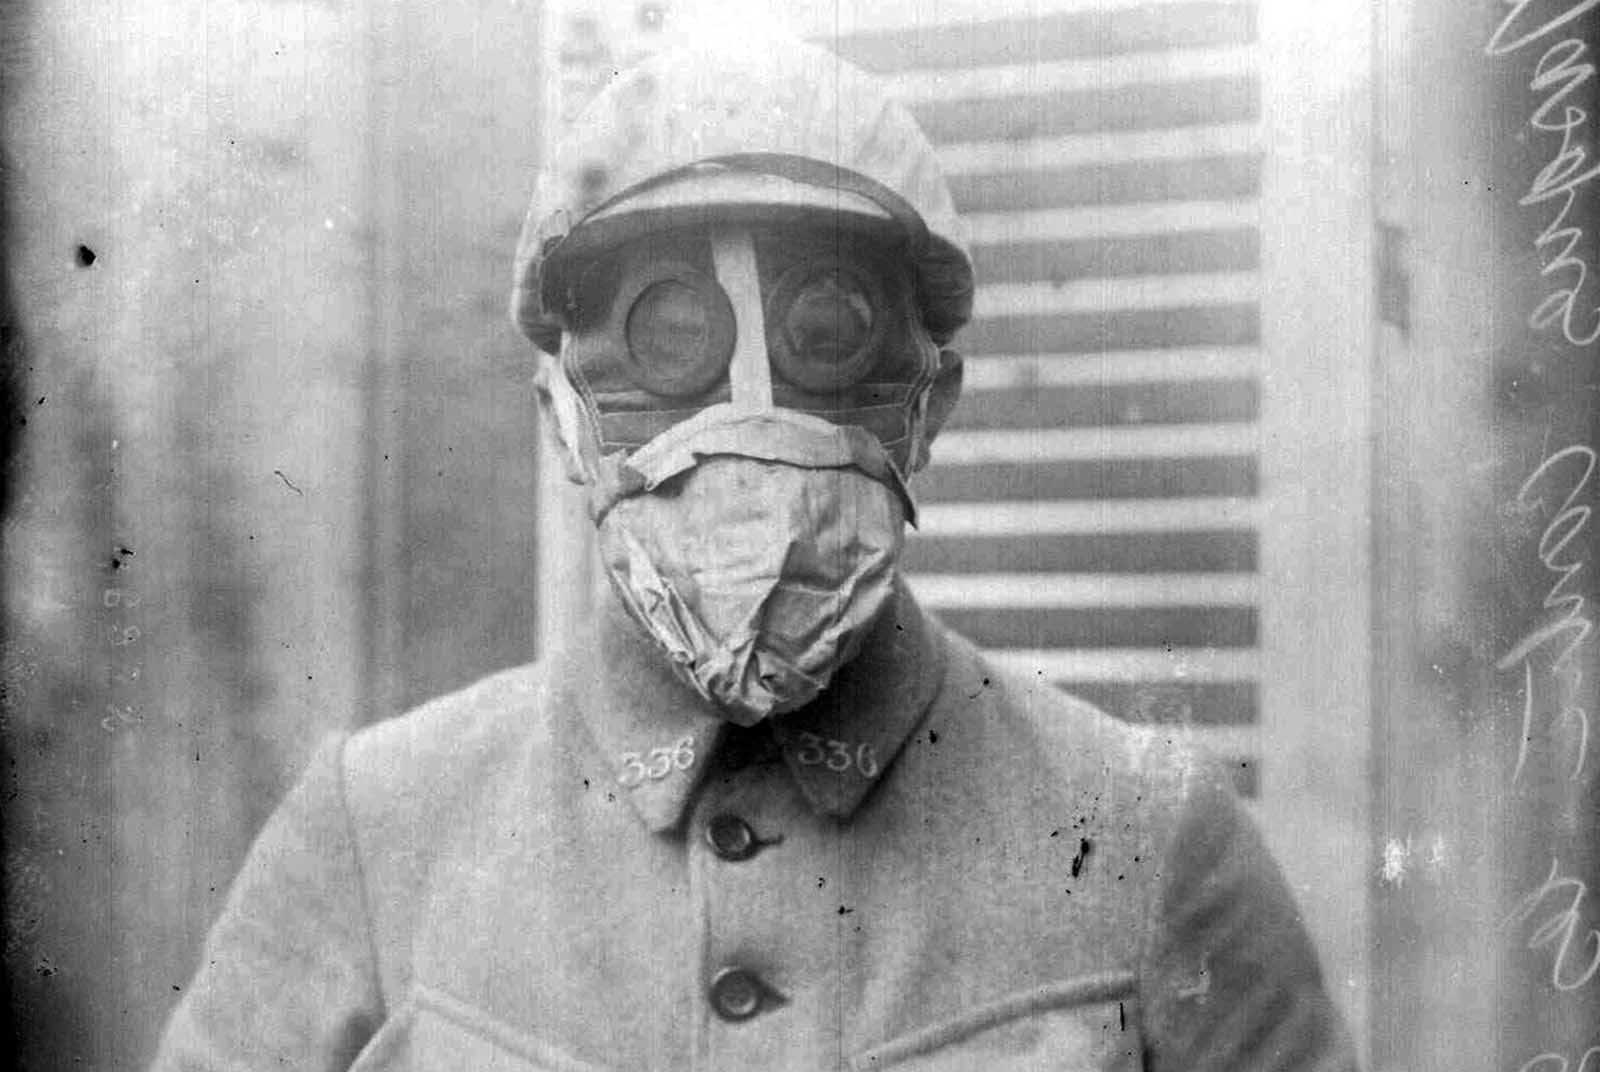 French soldier in gas mask, 1916.